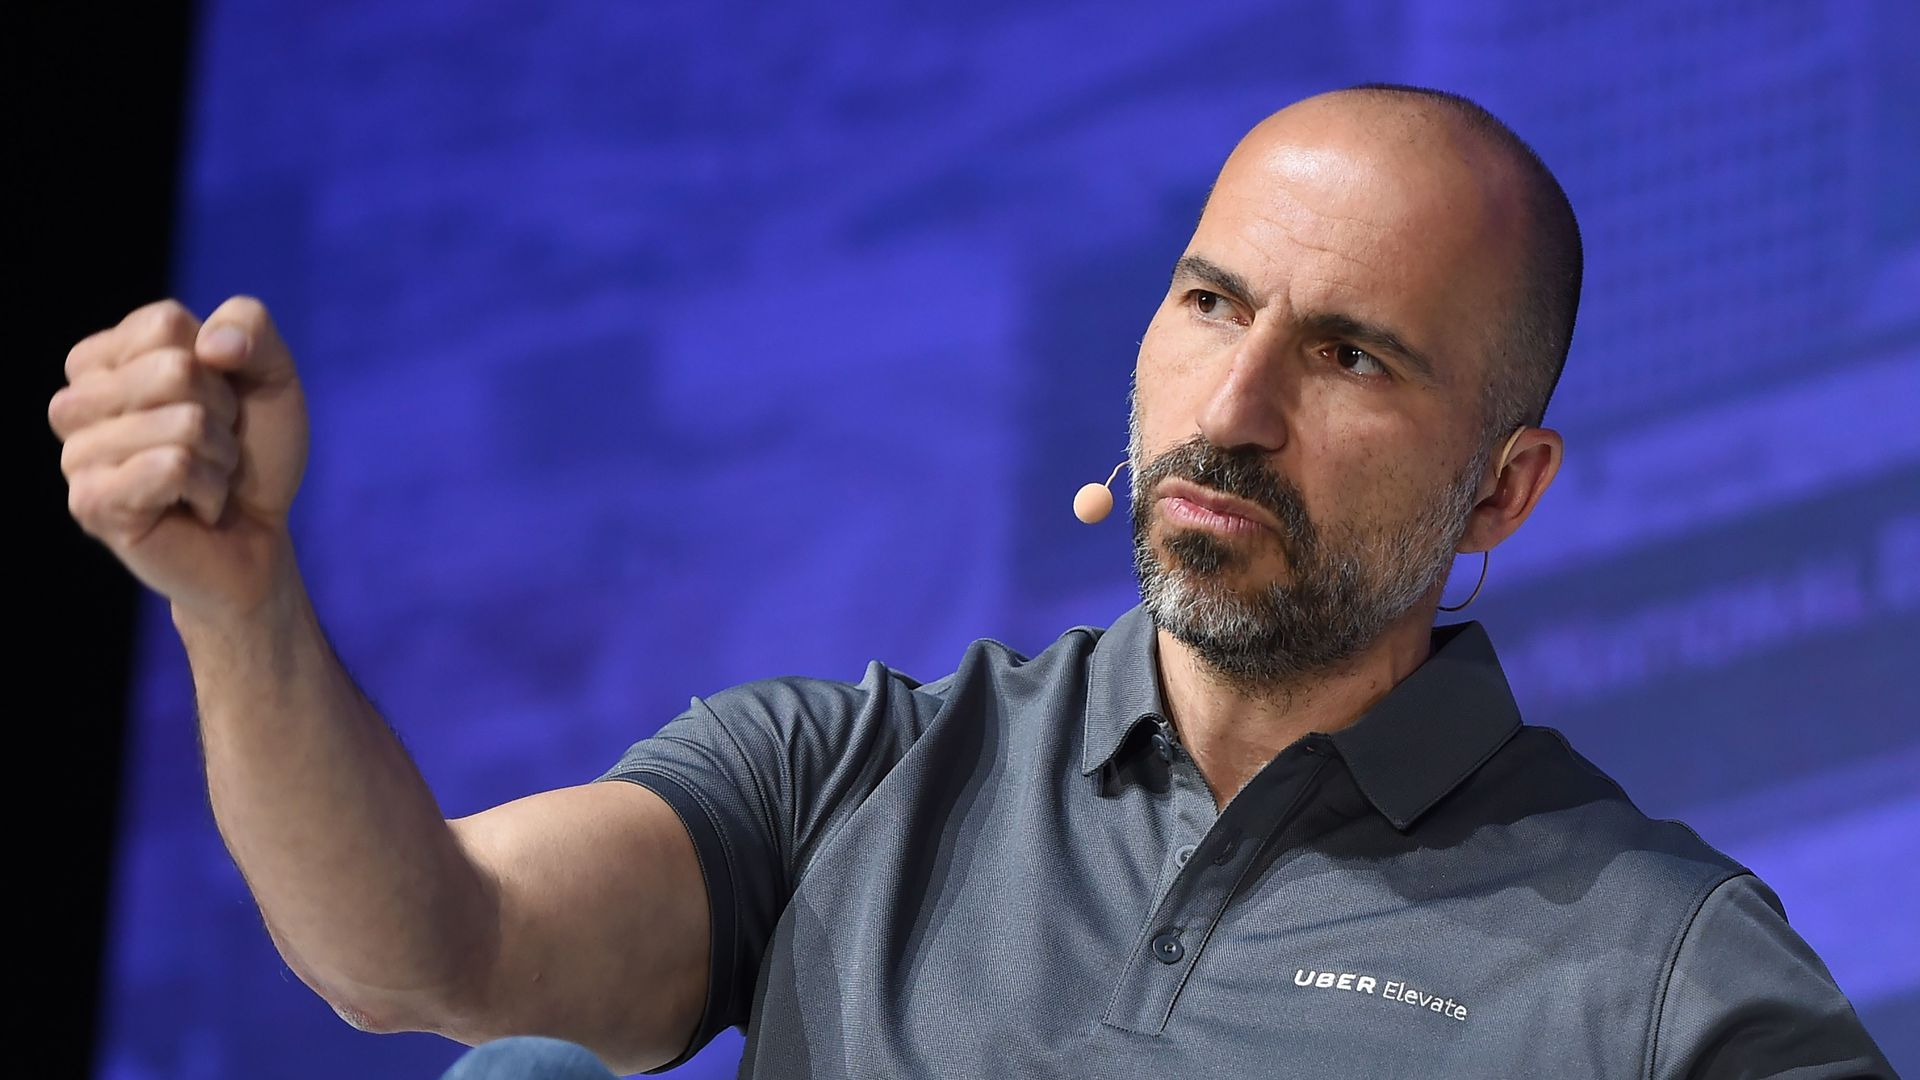 Uber Chief Executive Officer Dara Khosrowshahi speaks on stage during the second annual Uber Elevate Summit, on May 9, 2018